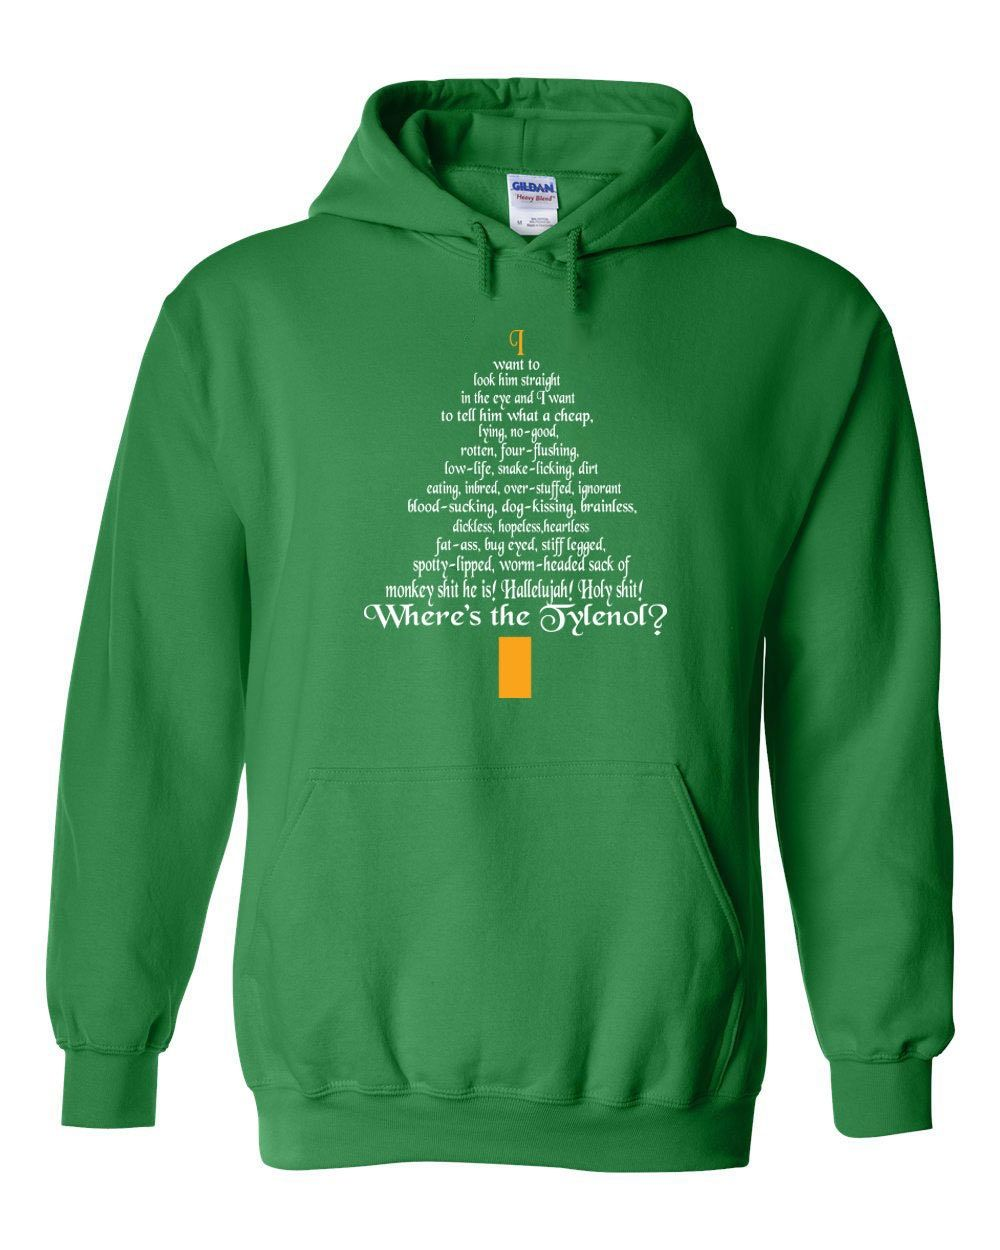 Clark Rant funny Christmas tree movie action 90s griswold holiday secret santa you serious - Clothing - Apparel - Hooded Sweatshirt Hoodie